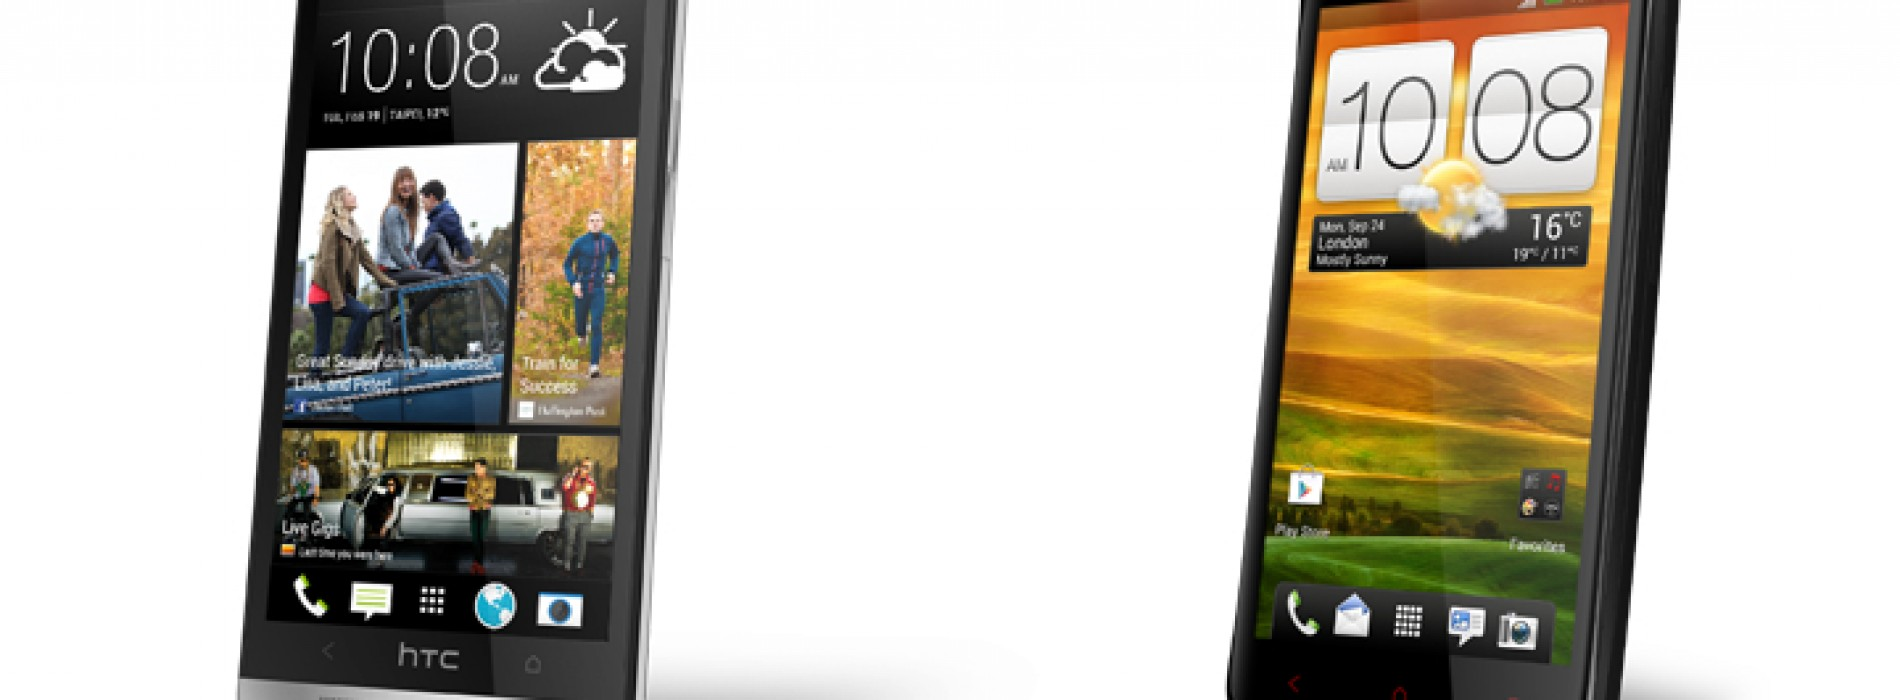 Comparing the HTC One to the HTC One X+